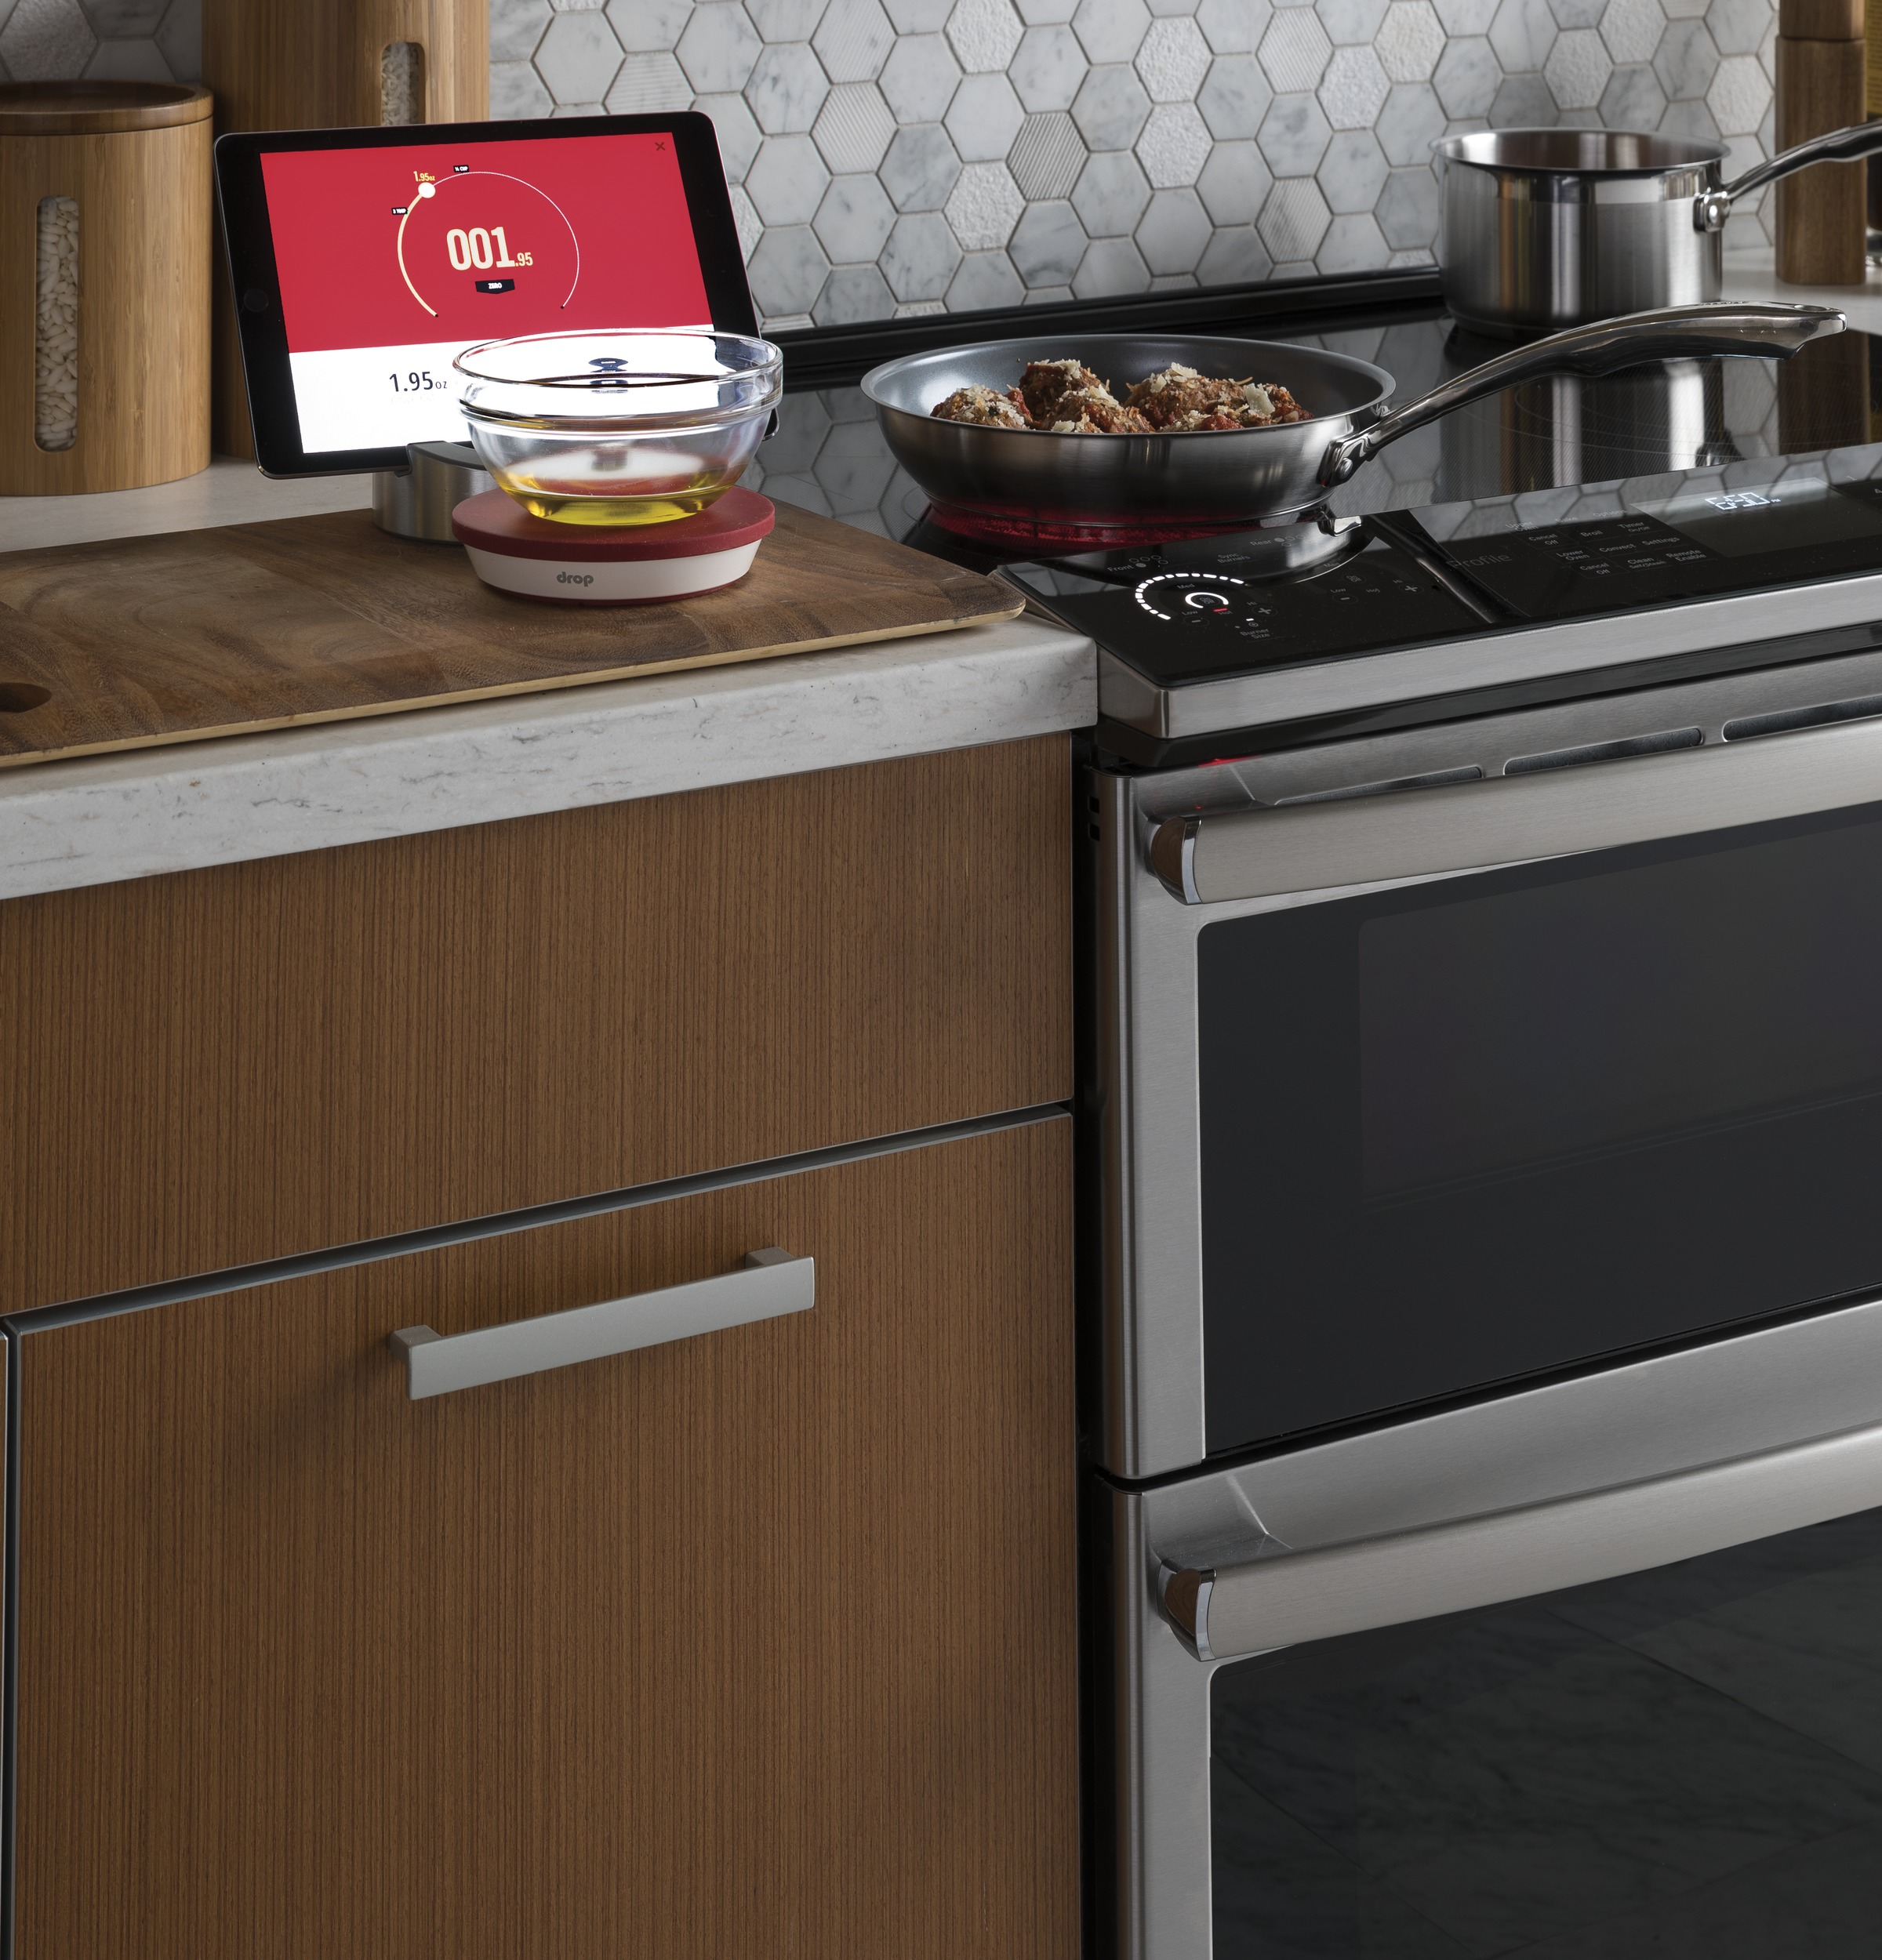 Ge Profile Series 30 Slide In Electric Double Oven Convection Besides Monogram Microwave On Parts Diagram 1 Of 16